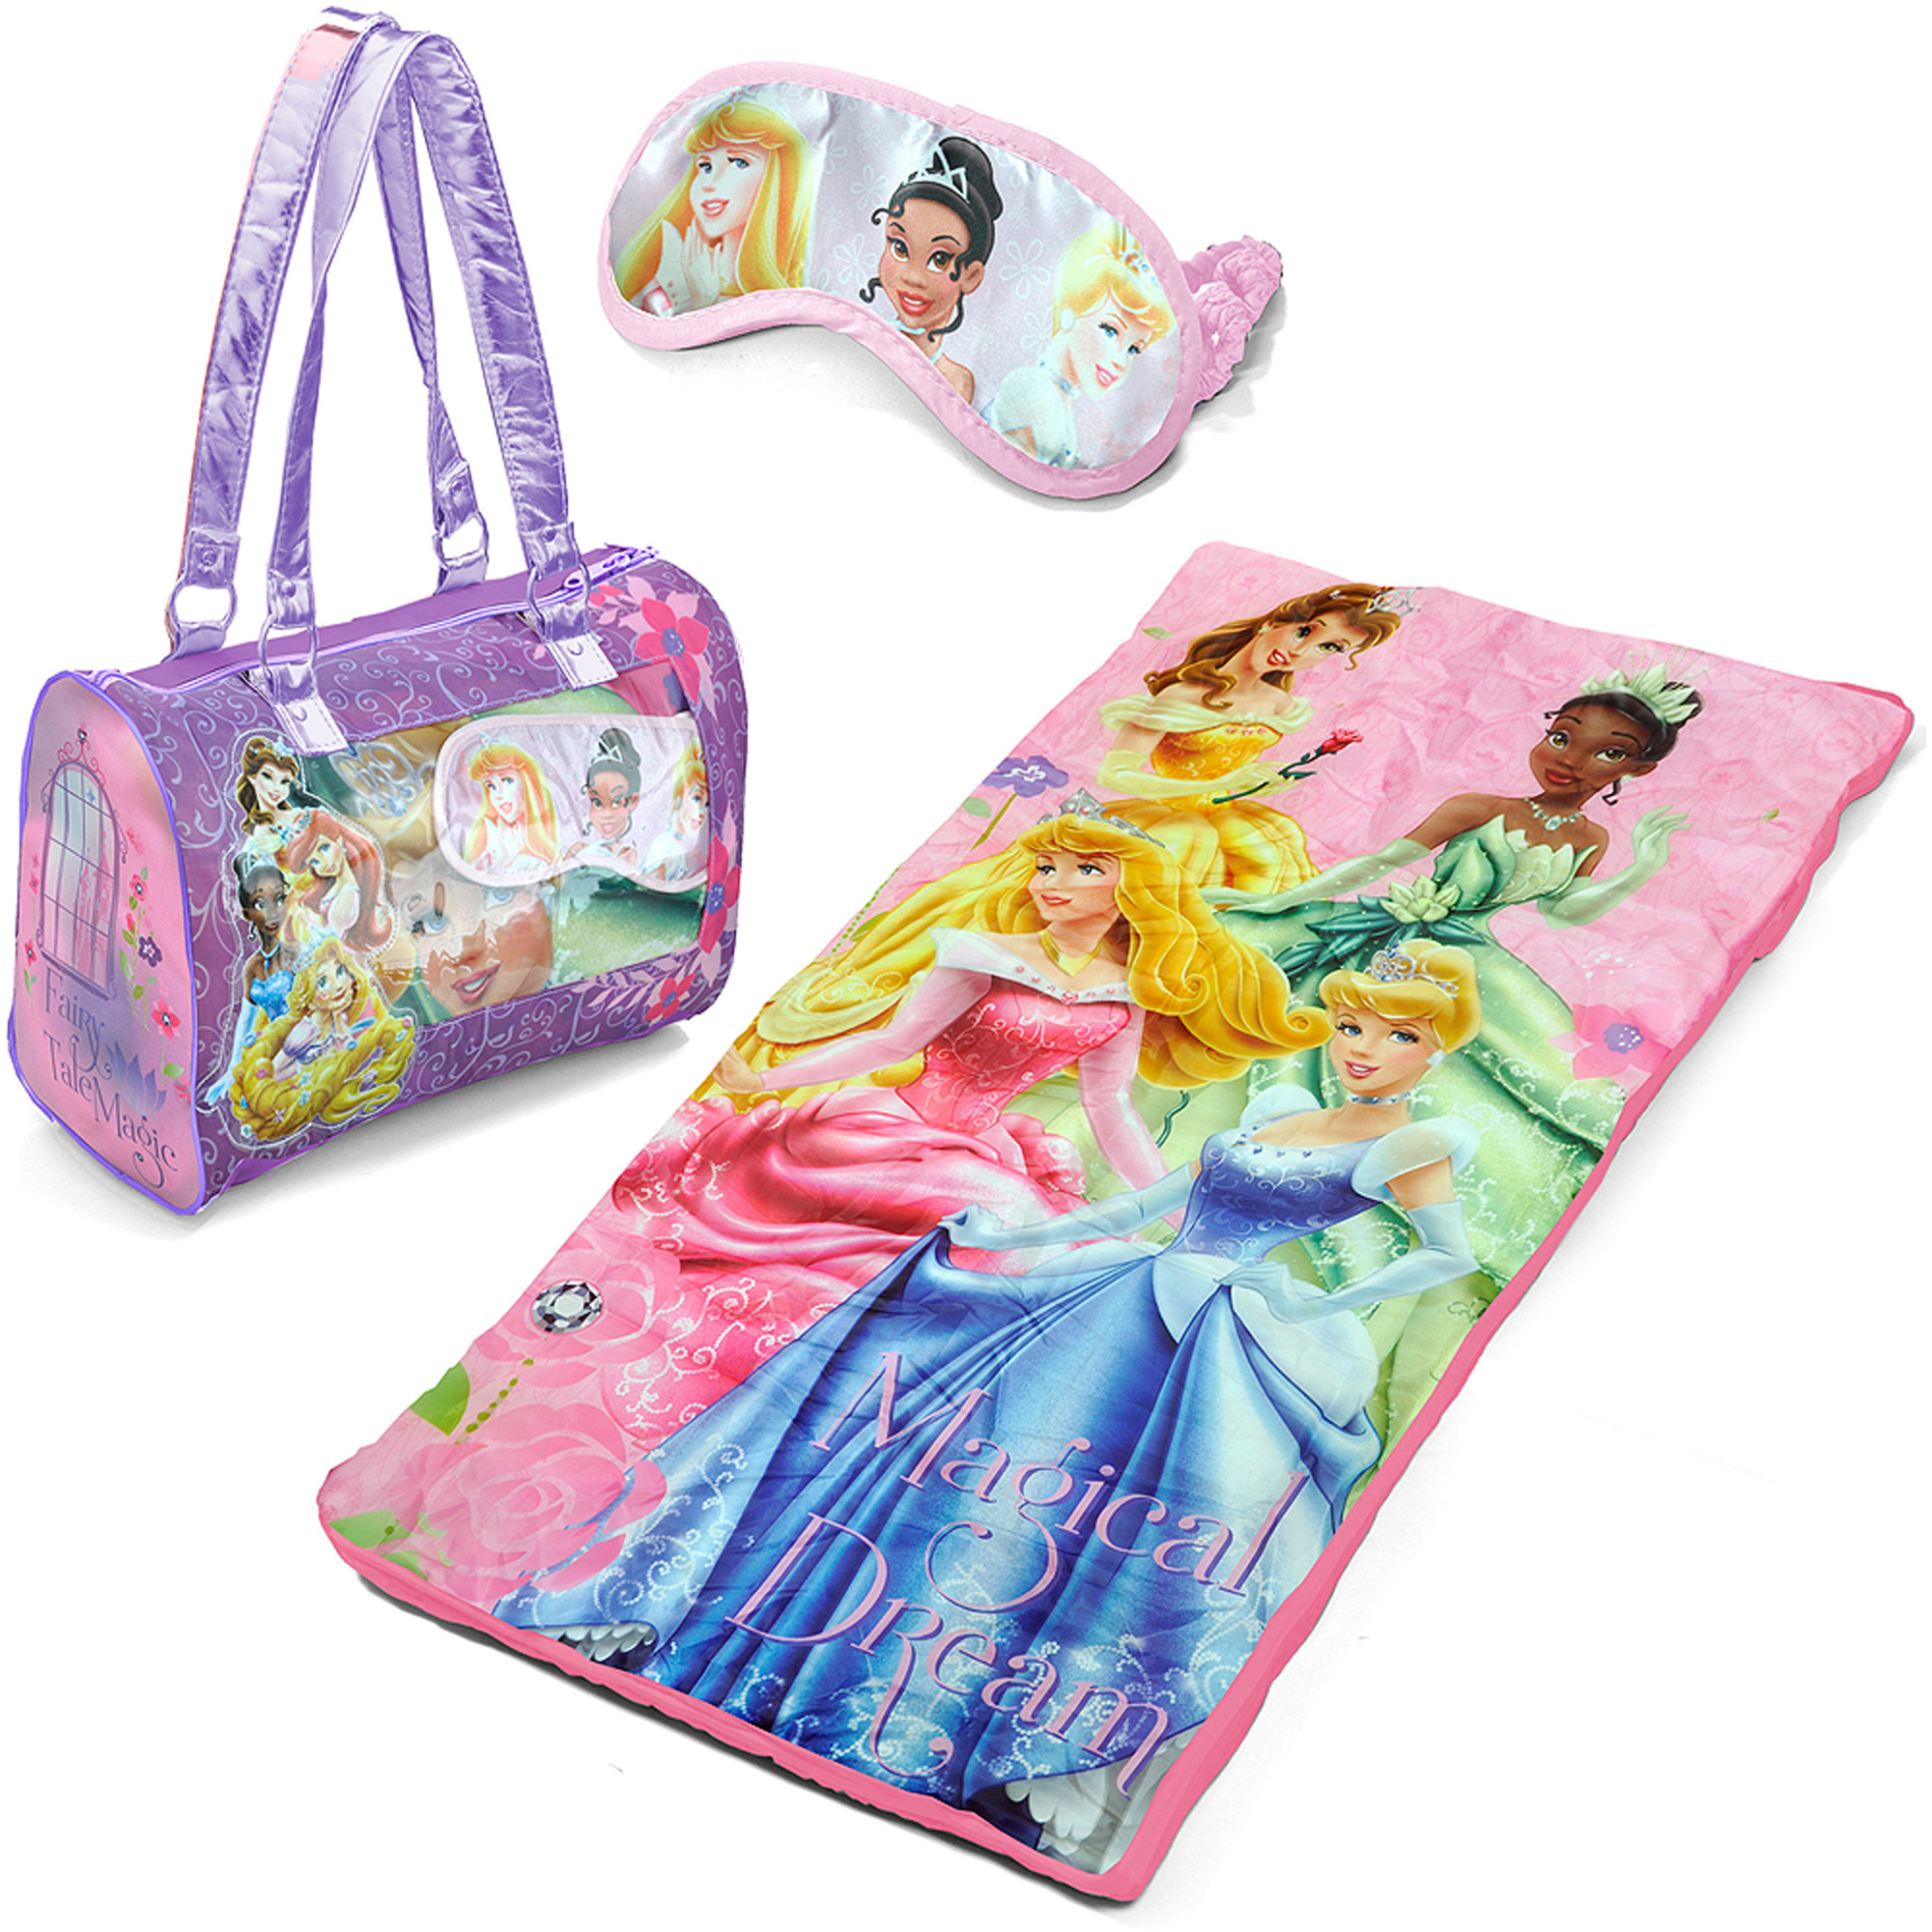 Disney Princess Sleepover Slumber Sack/Nap Mat with Purse and Bonus Eye Mask